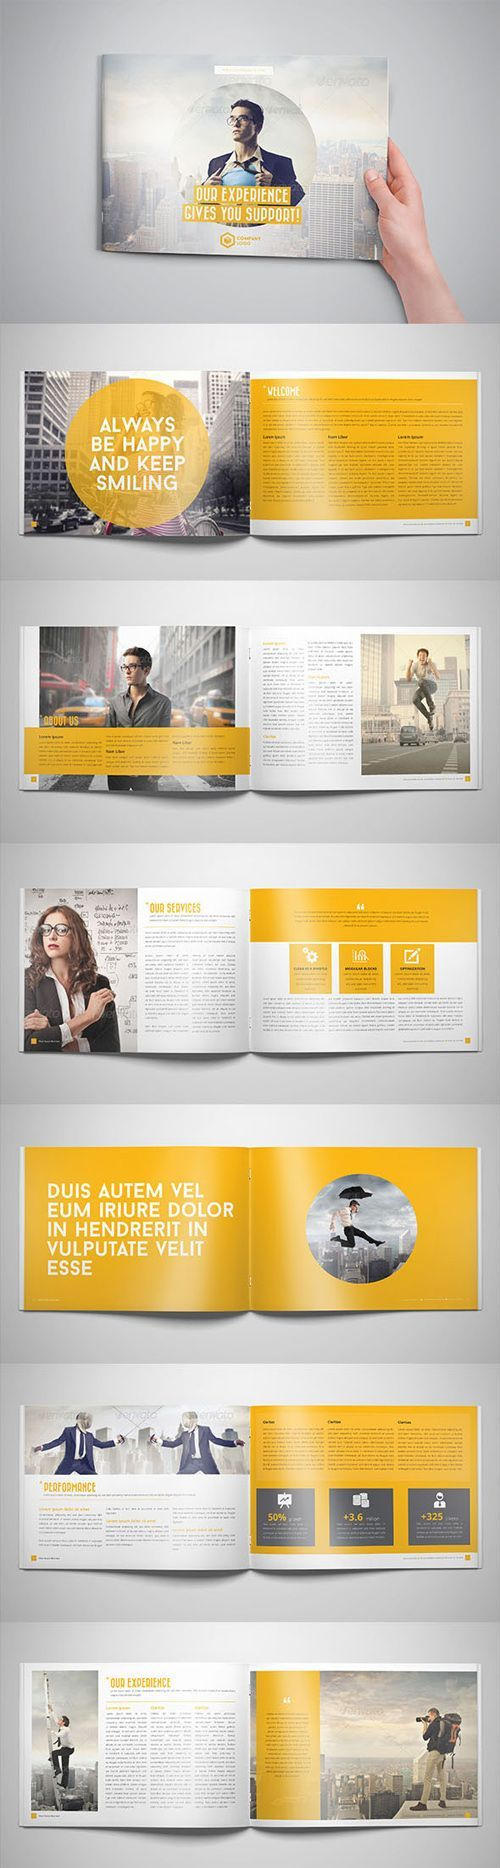 Mkninja i will design a professional business brochure and flyer mkninja i will design a professional business brochure and flyer for 10 on www business brochure brochures and book layouts accmission Choice Image